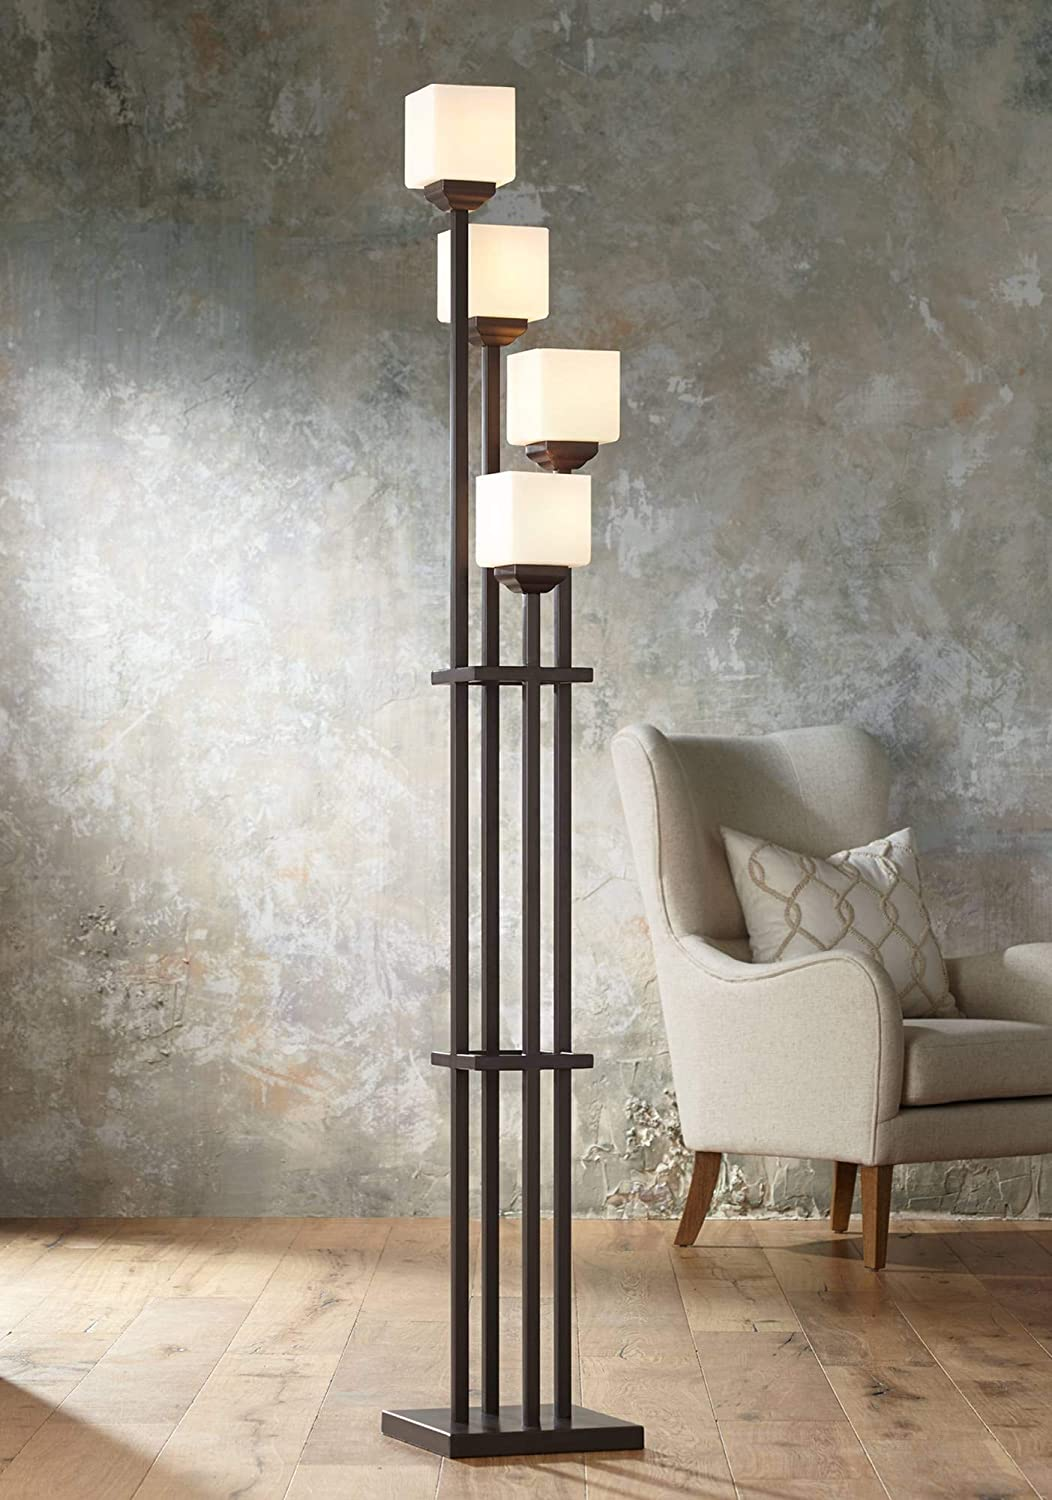 Floor Lamps Big Lots 300×300.jpg